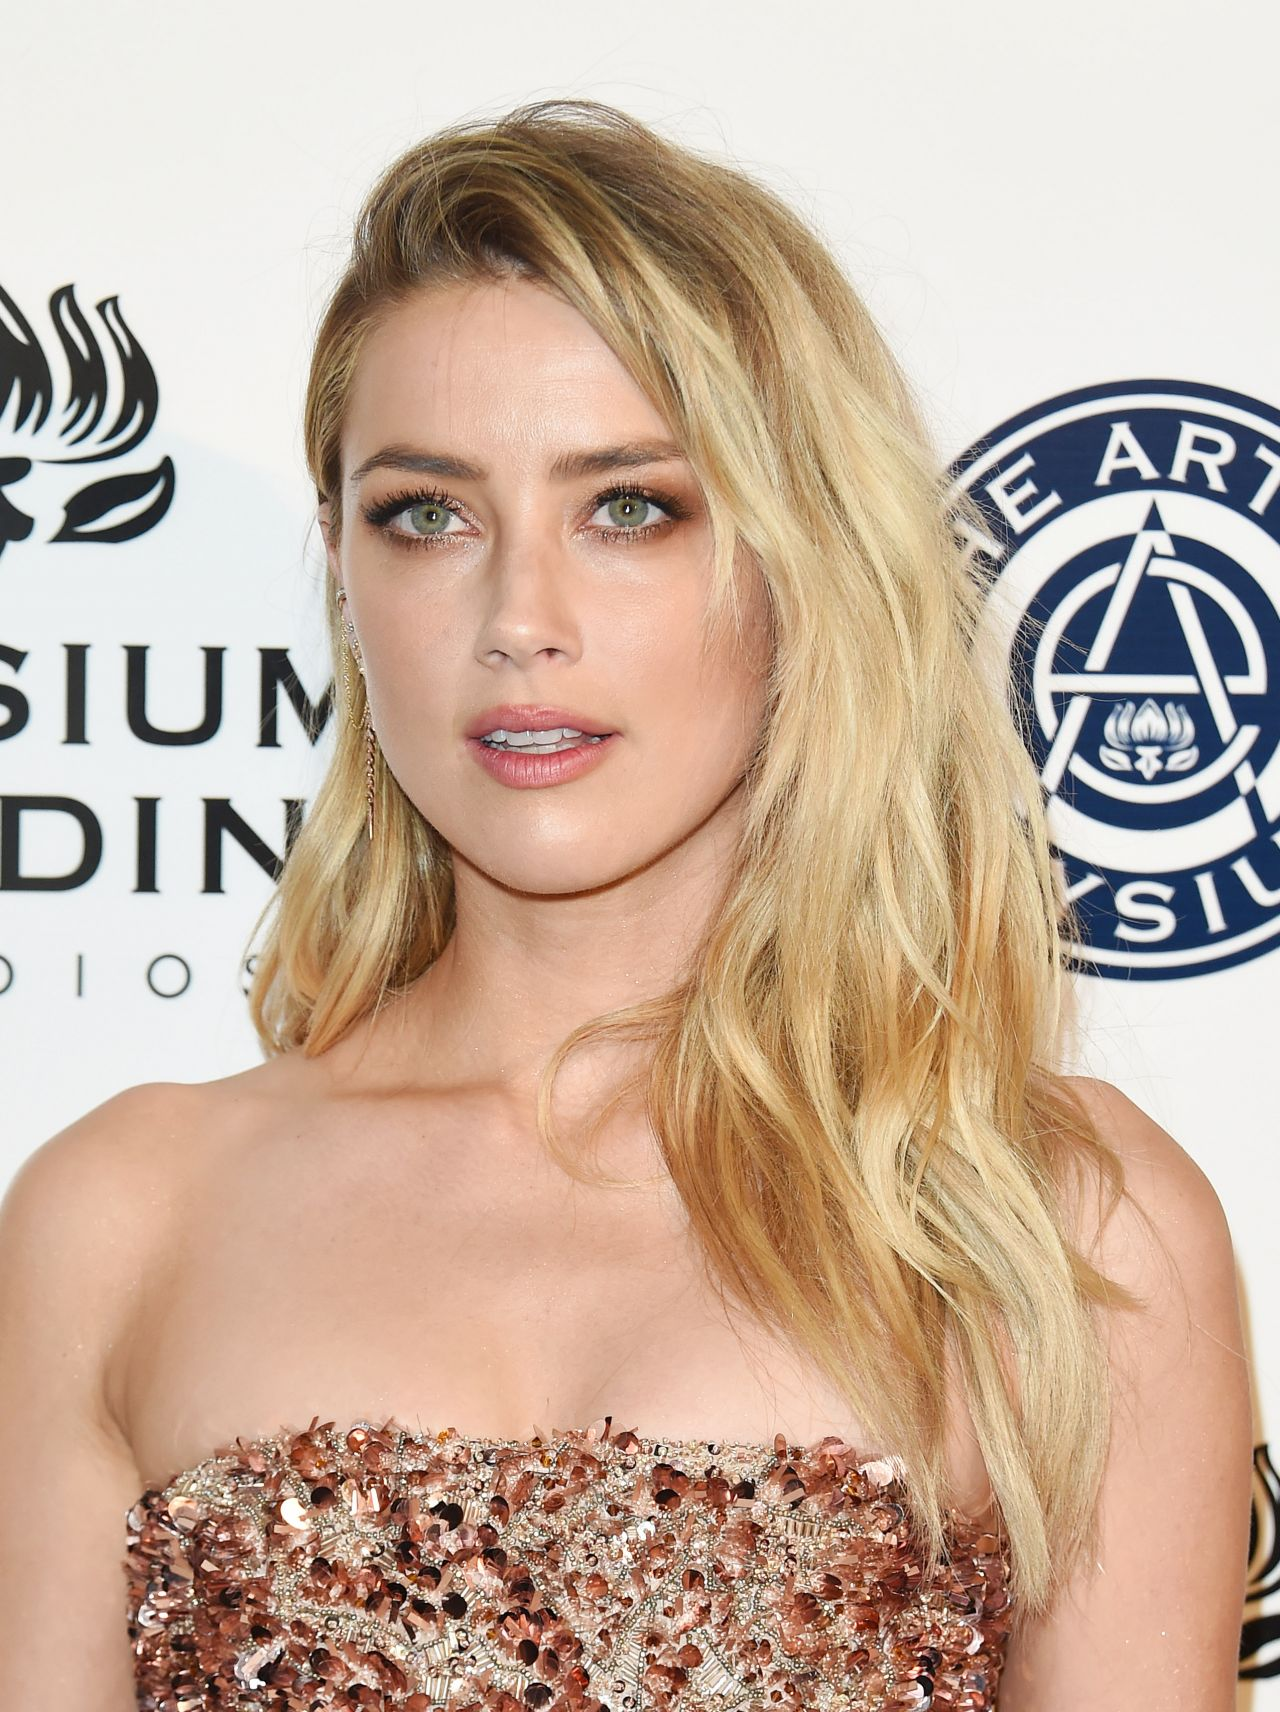 Celebrites Amber Heard nude photos 2019